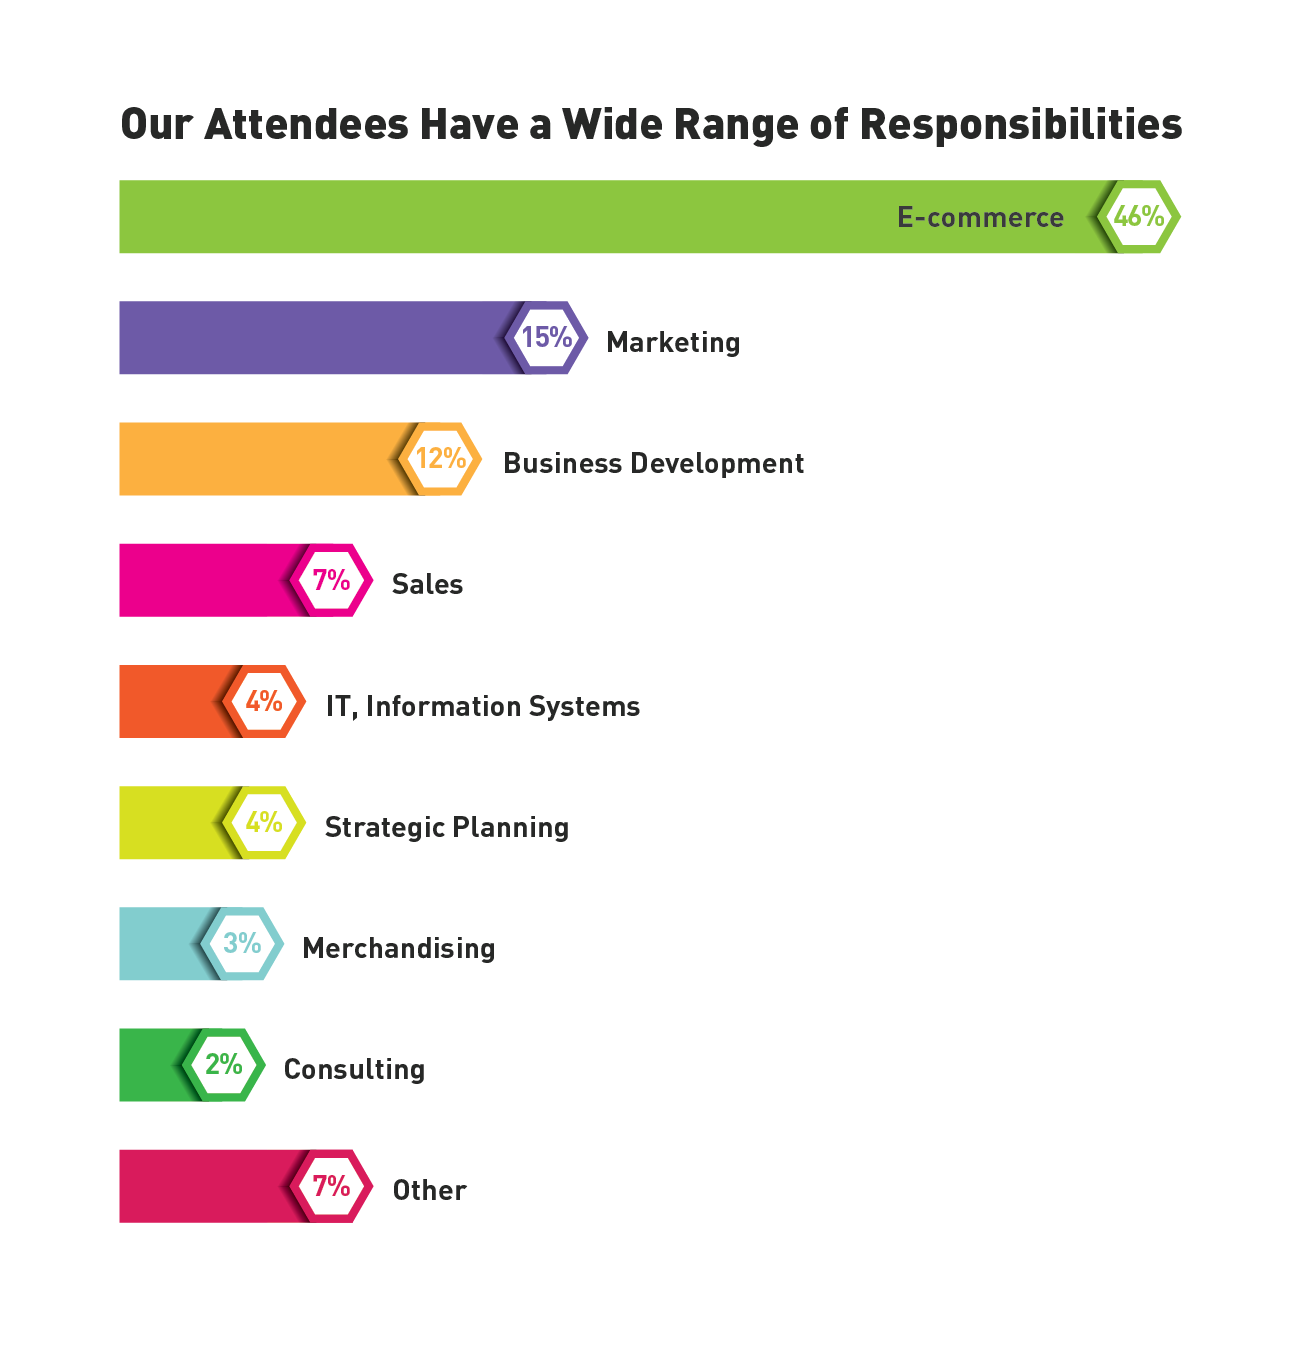 Our attendees have a wide range of responsibilities